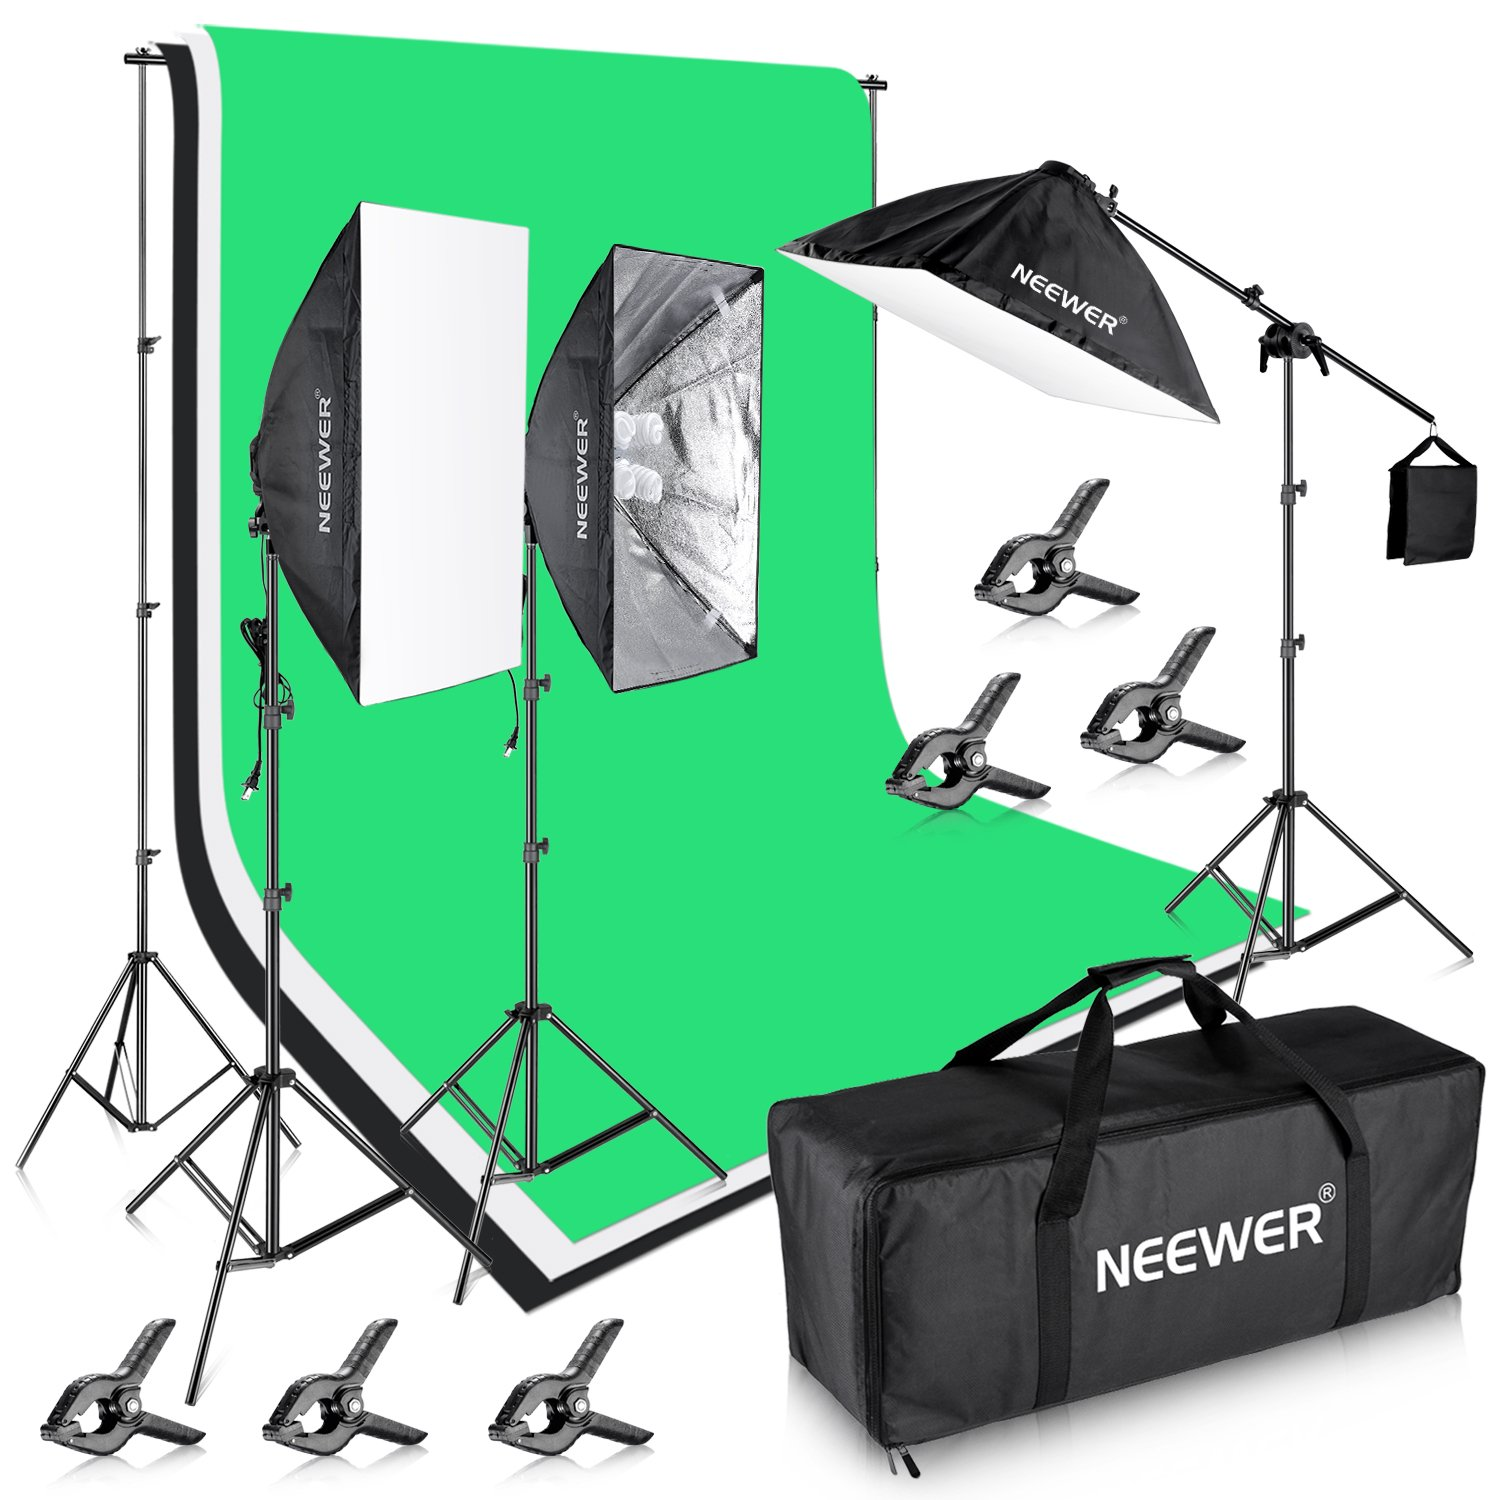 Neewer 8.5x10ft/2.6x3M Background Support System with Three 6x 9ft/1.8x2.8M Backdrop 2400W 5500K Lighting Kit for Photography Video Studio Shooting